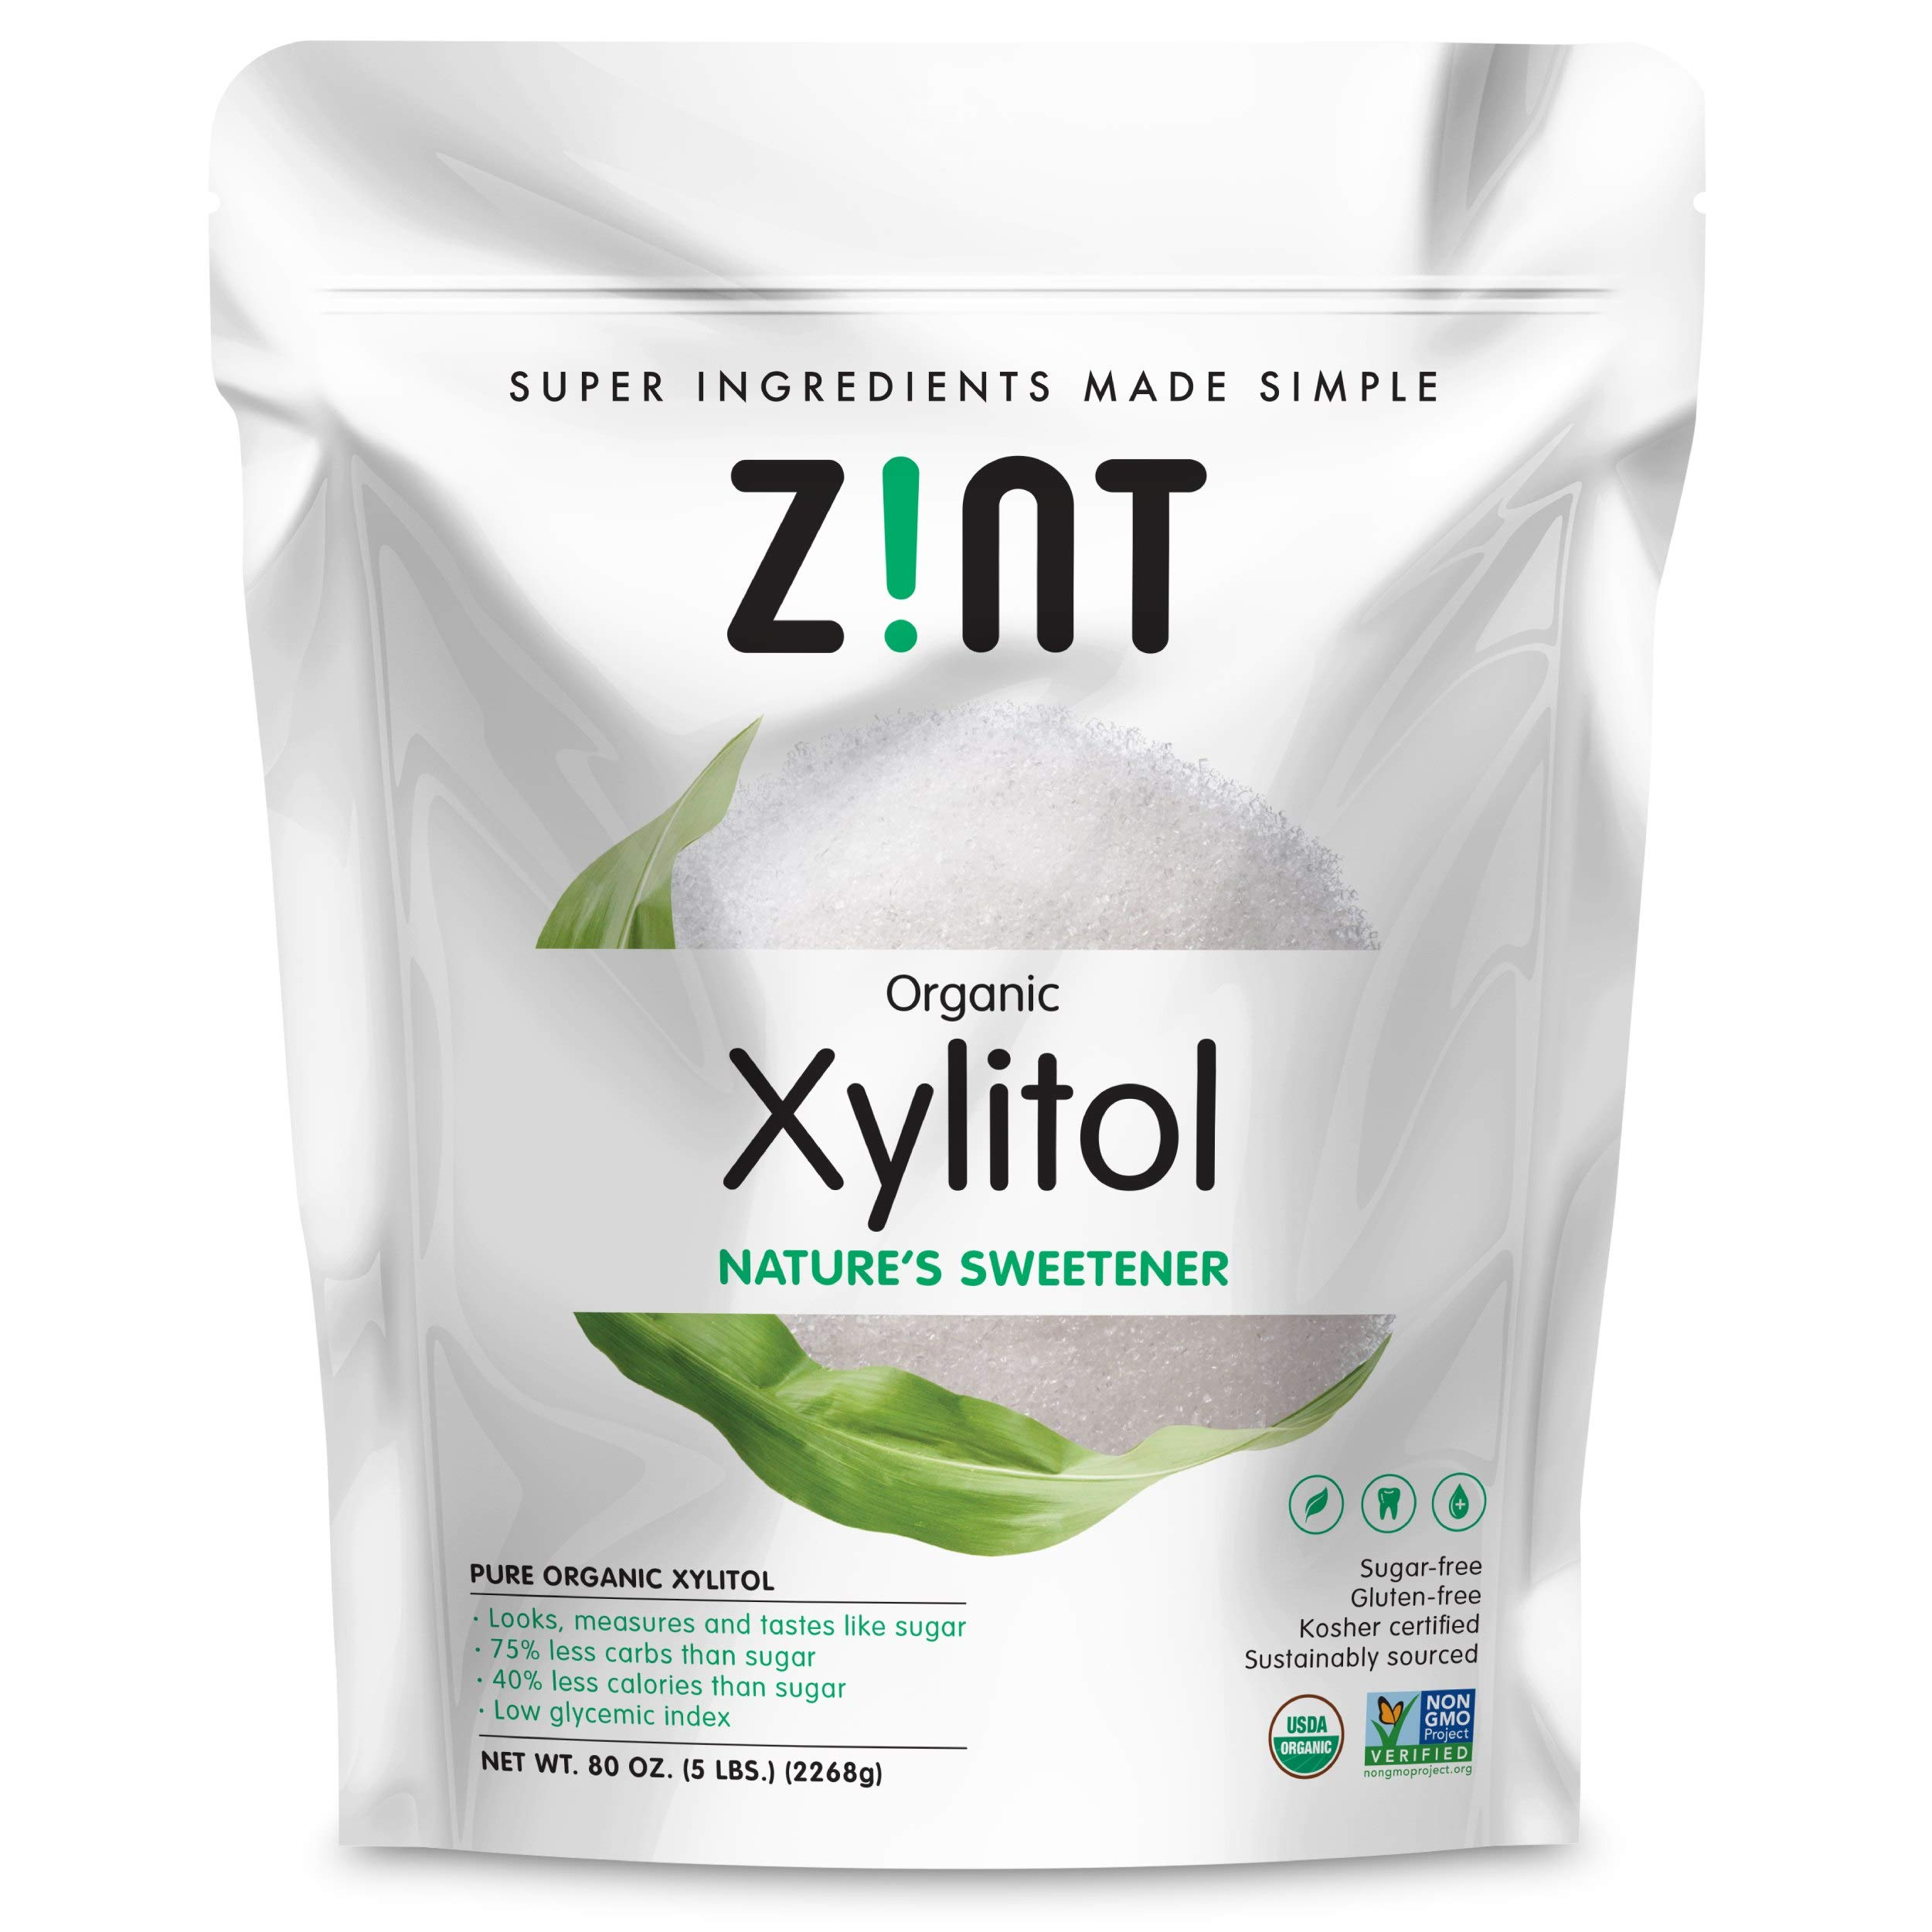 Organic Xylitol Sweetener XL (5 lbs): Keto Friendly, Low-Carb, Low-Calorie, USDA Organic Natural Sugar Substitute, Non GMO, Low Glycemic Index, Measures & Tastes Like Sugar by Zint (Image #1)